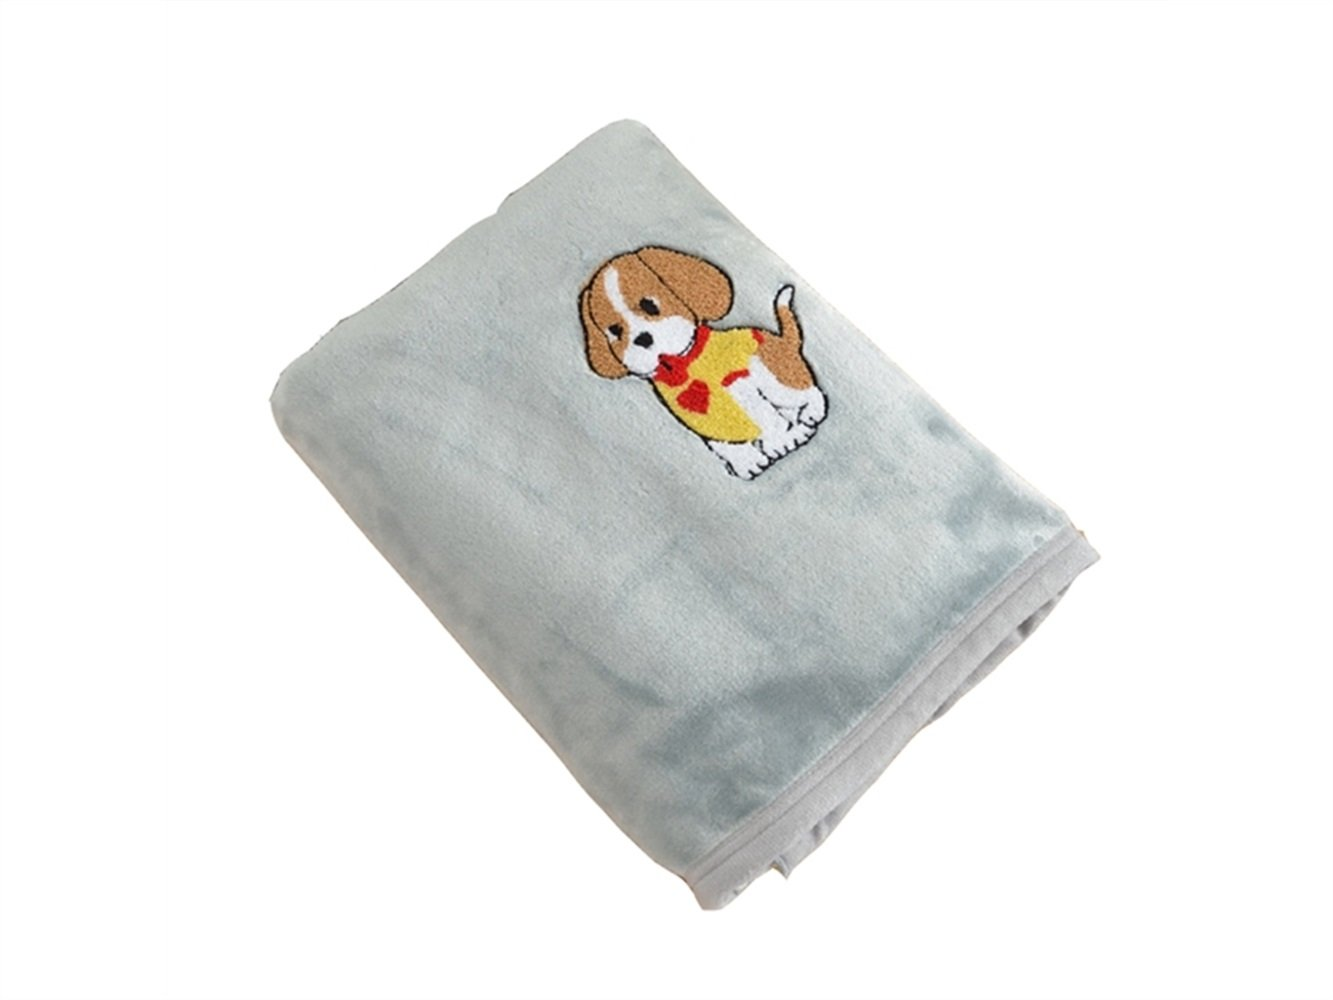 Gemütlich Kinder Cartoon Applique (Hund) Decke Cute Animal Blanket Kinder Schlafdecke (Matcha Green) für Kleinkinder HFjingjing